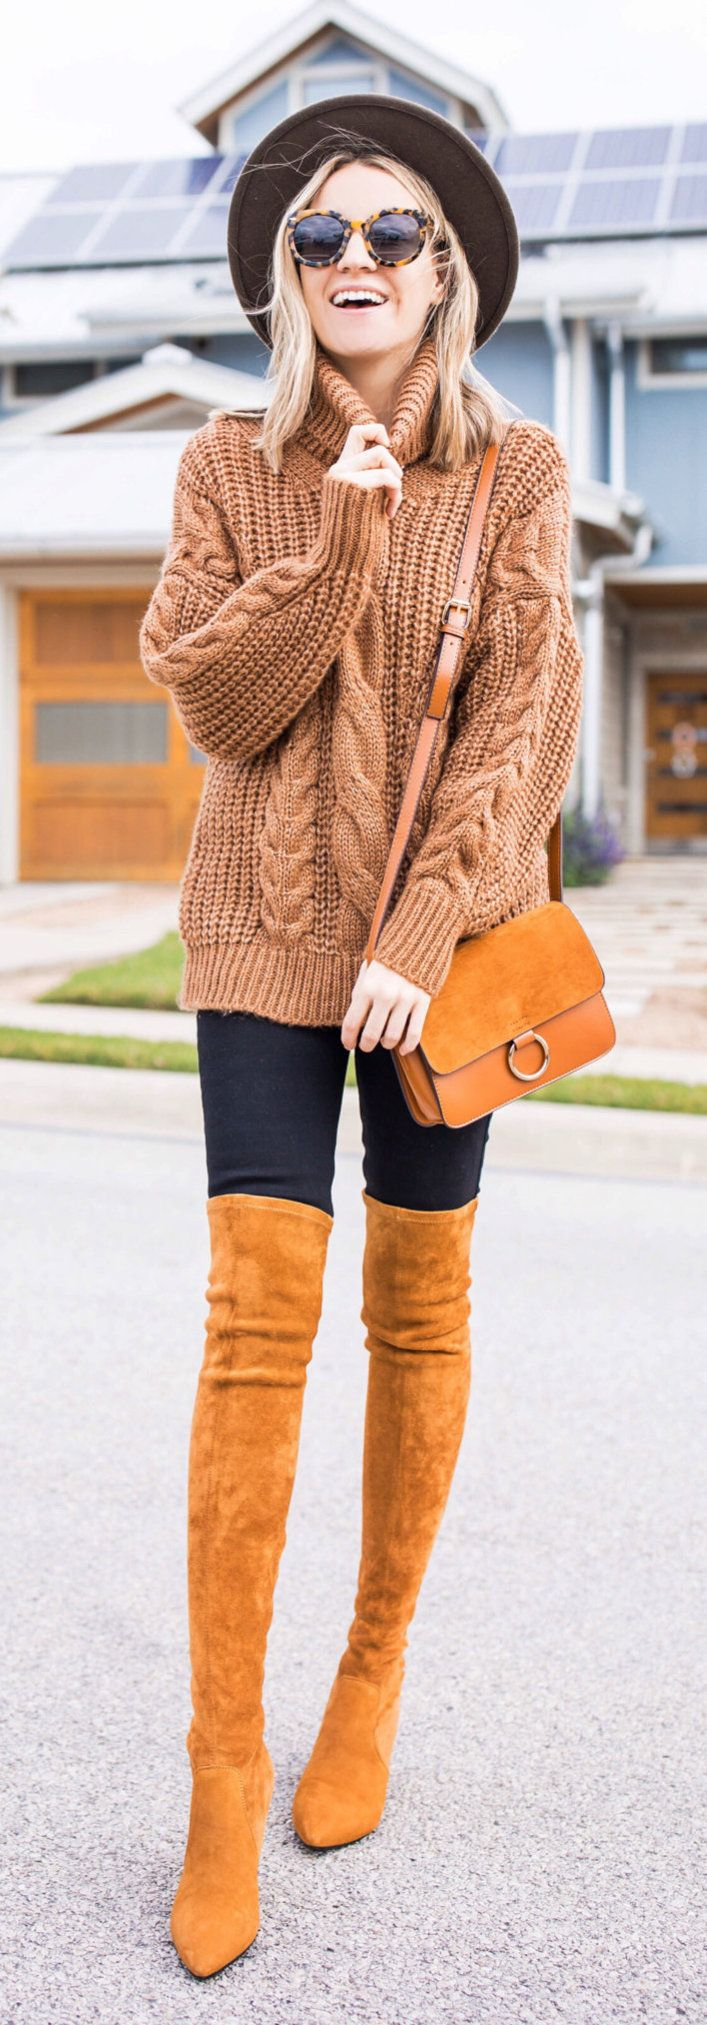 brown knitted turtleneck sweater